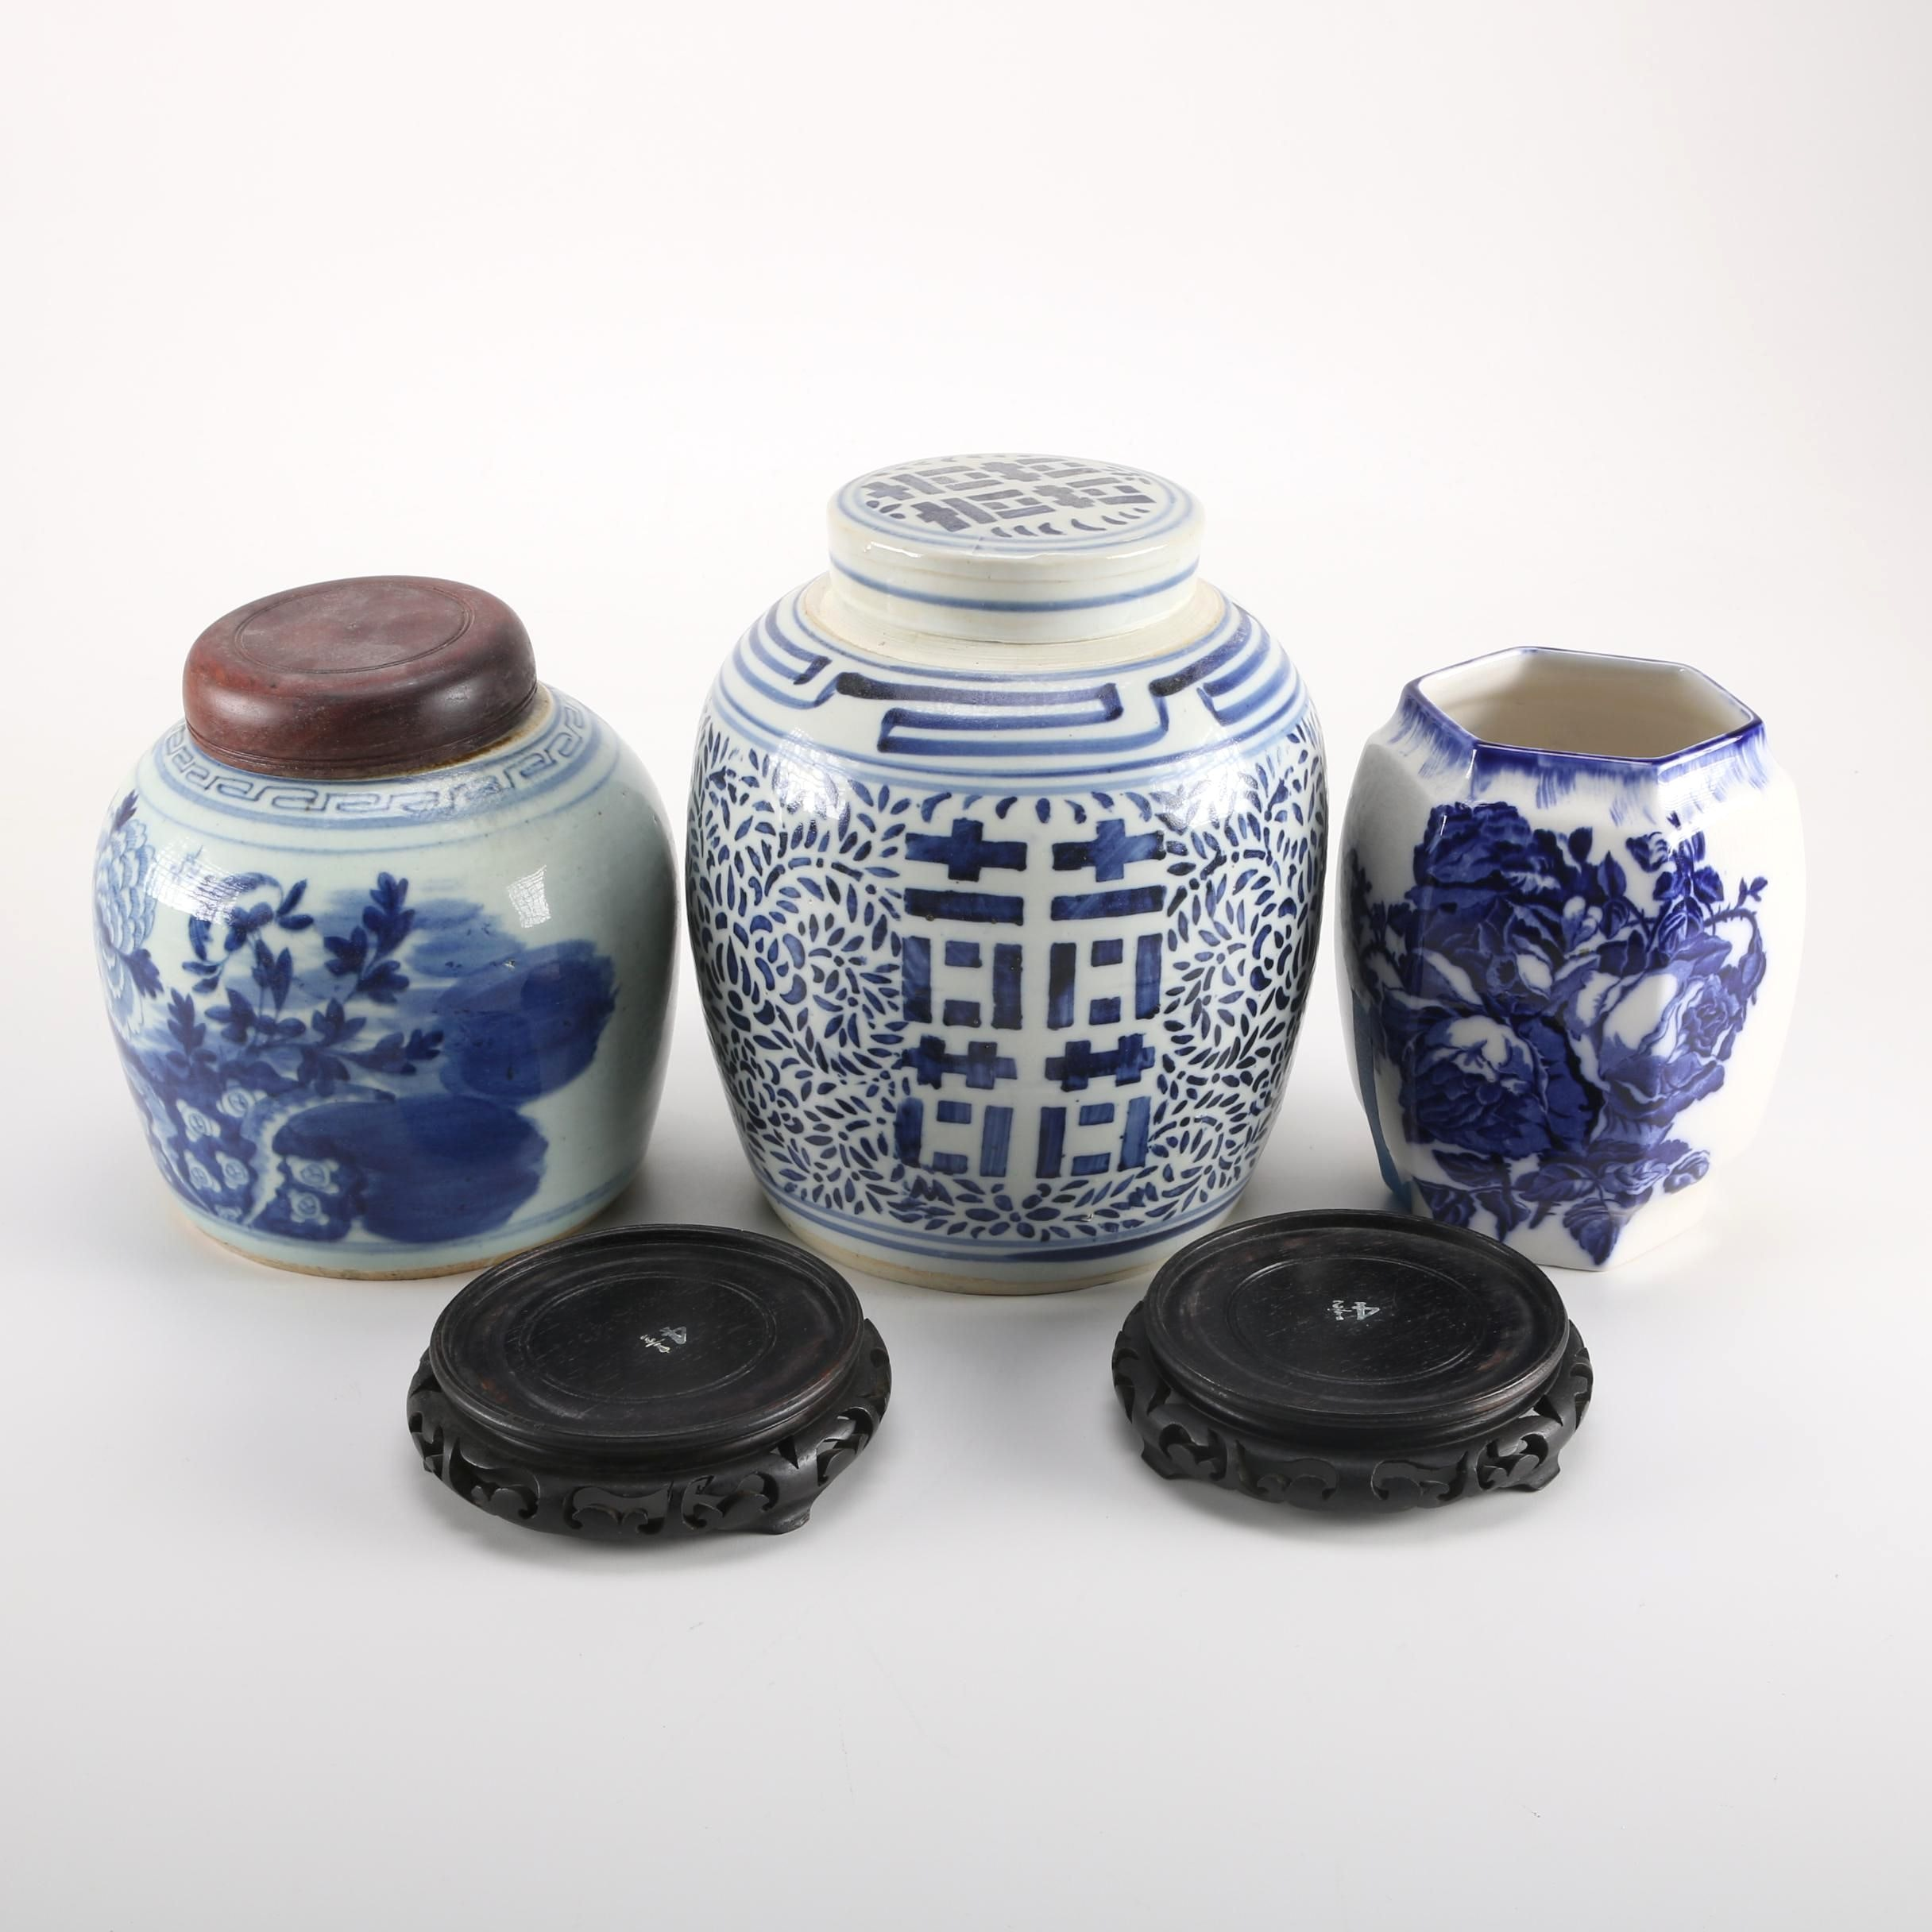 Chinese Double Happiness Ginger Jar and Other Blue on White Ceramics